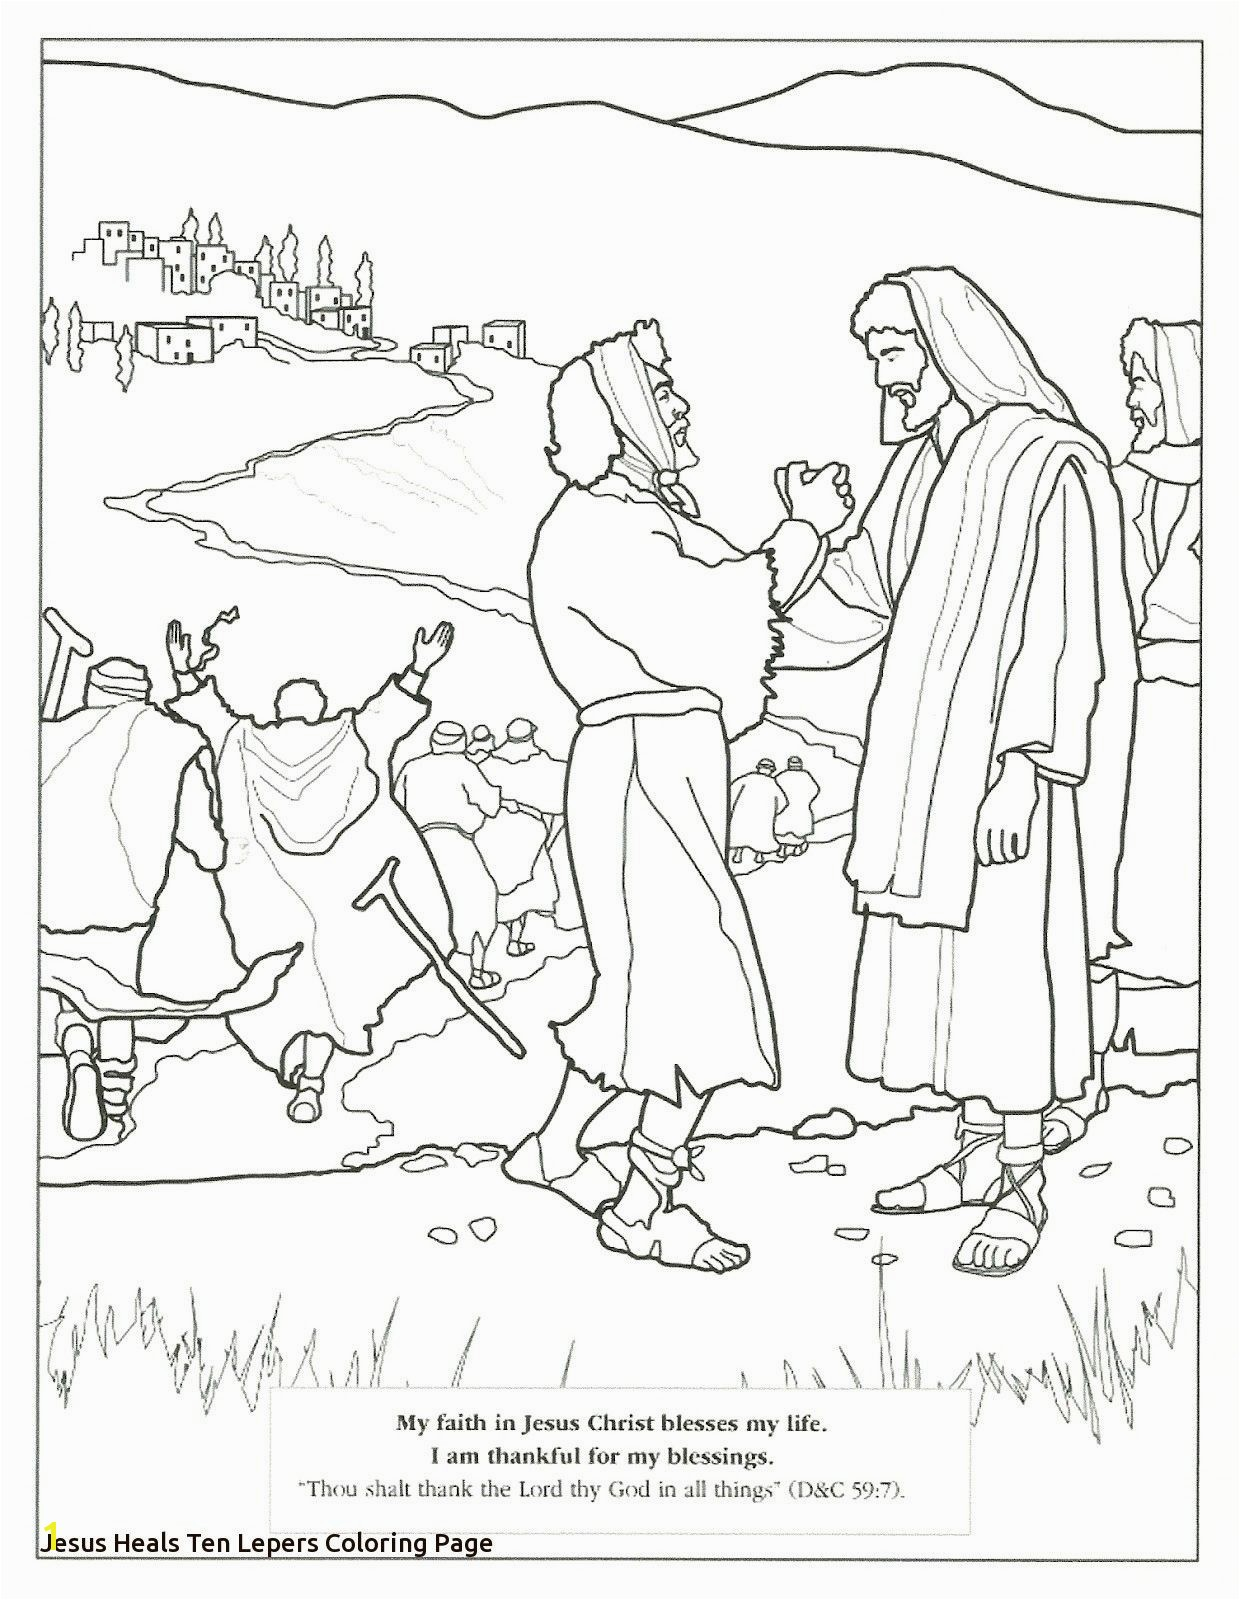 Ten Lepers Coloring Page Fine Jesus Heals Ten Lepers Coloring Page Elaboration Coloring